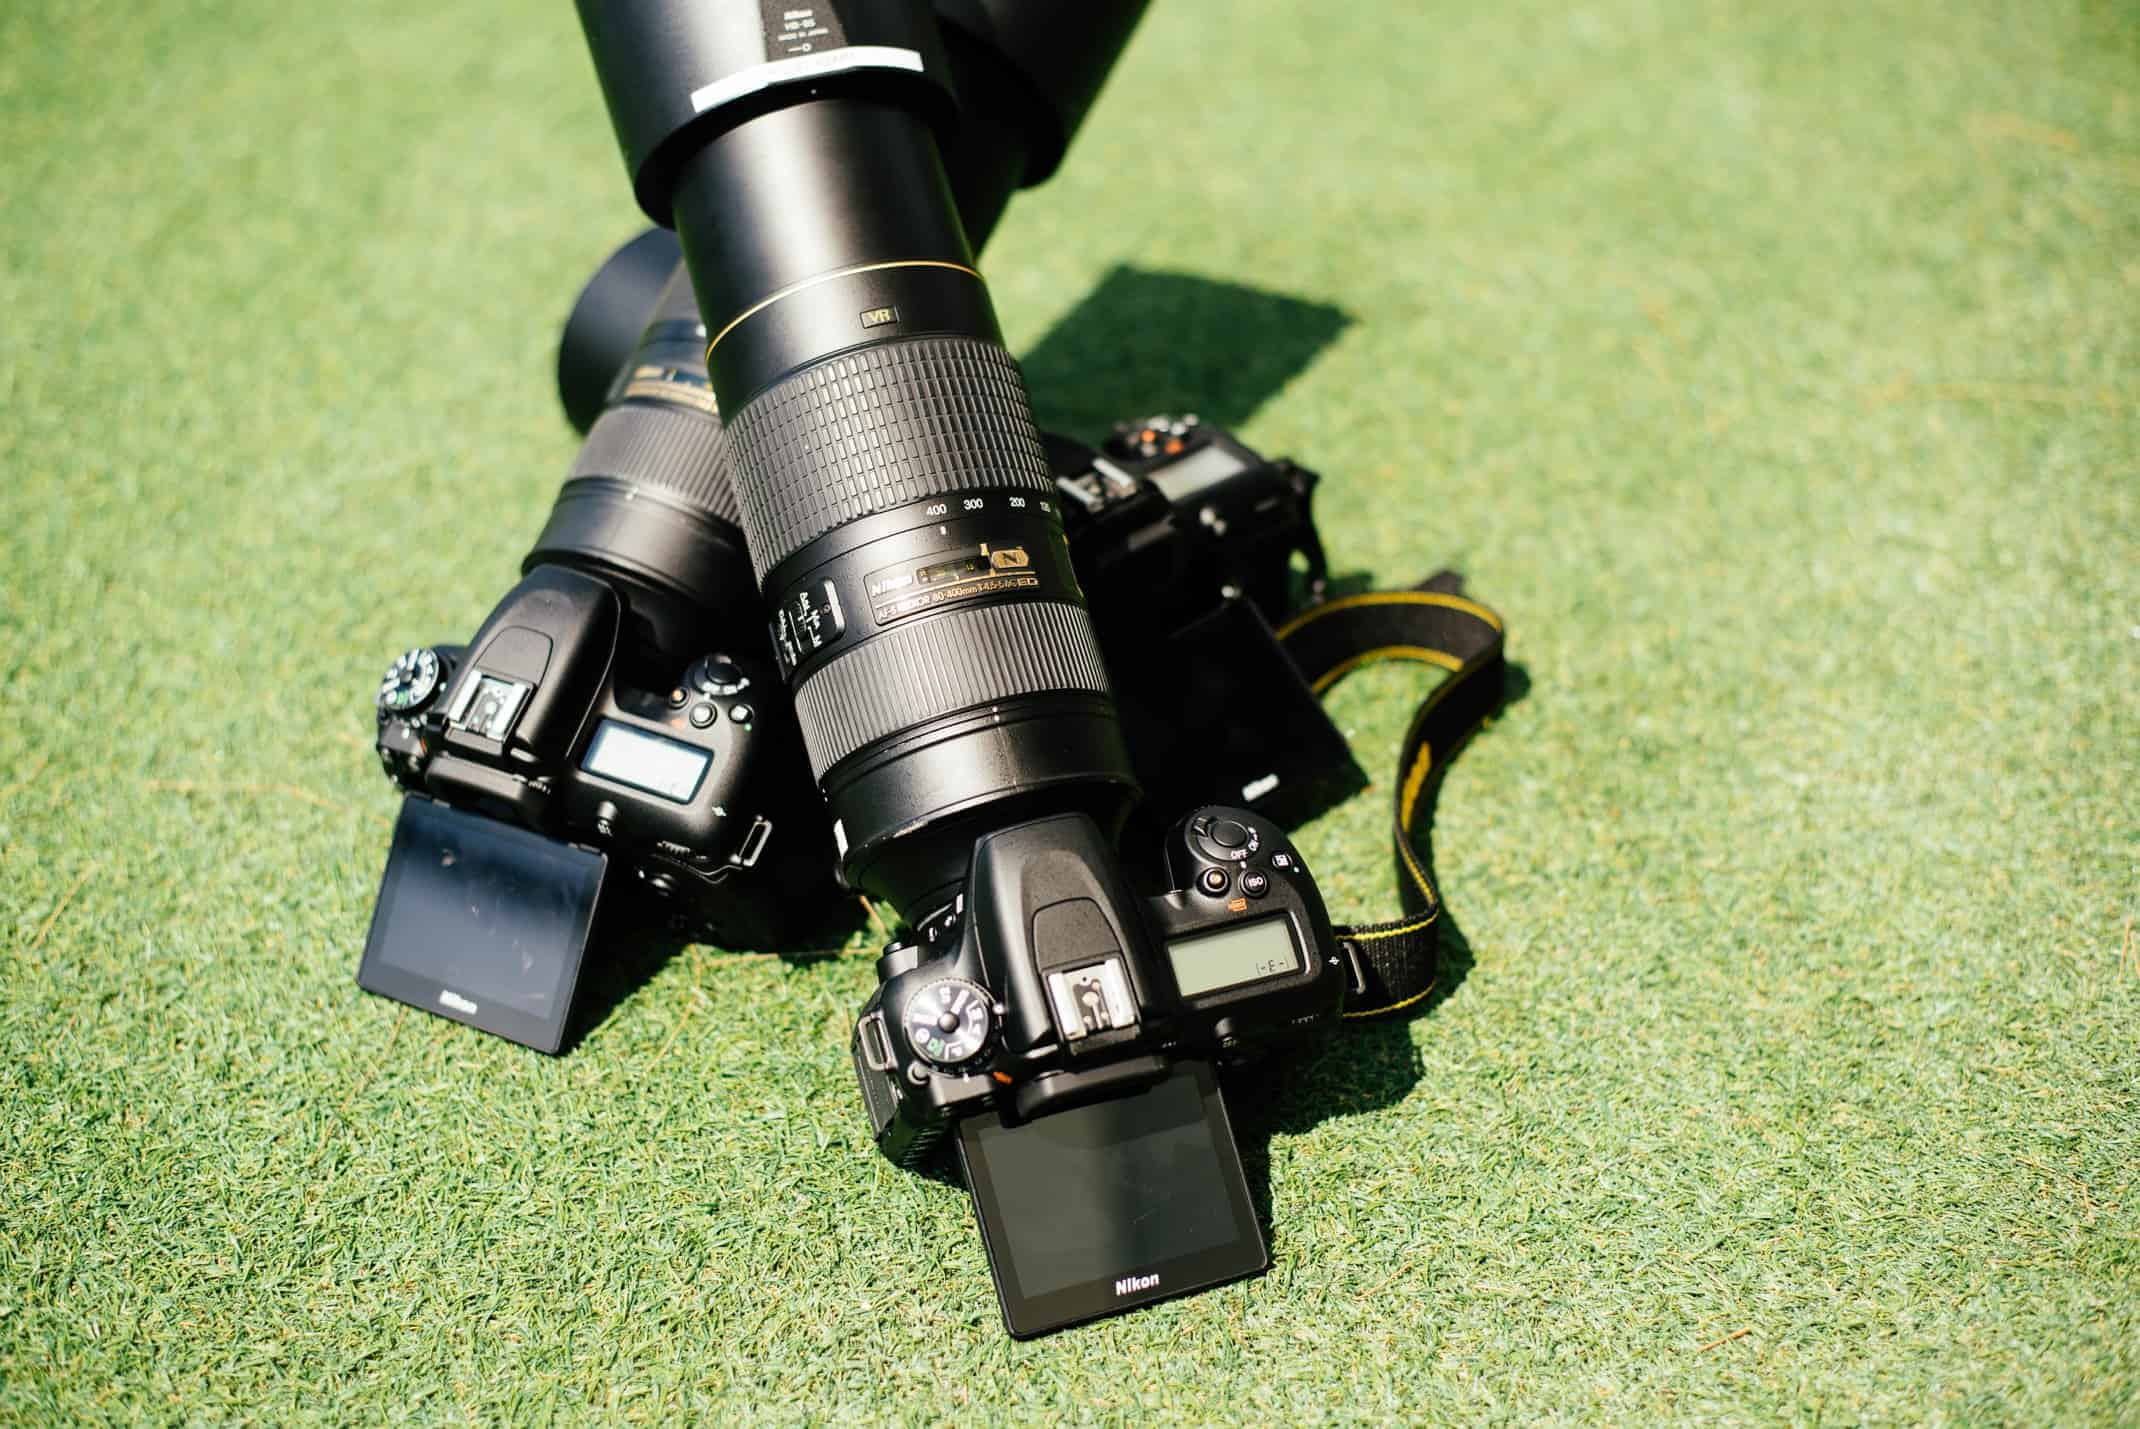 The Best Nikon DSLR Lenses for Enthusiasts (7 Top Picks)